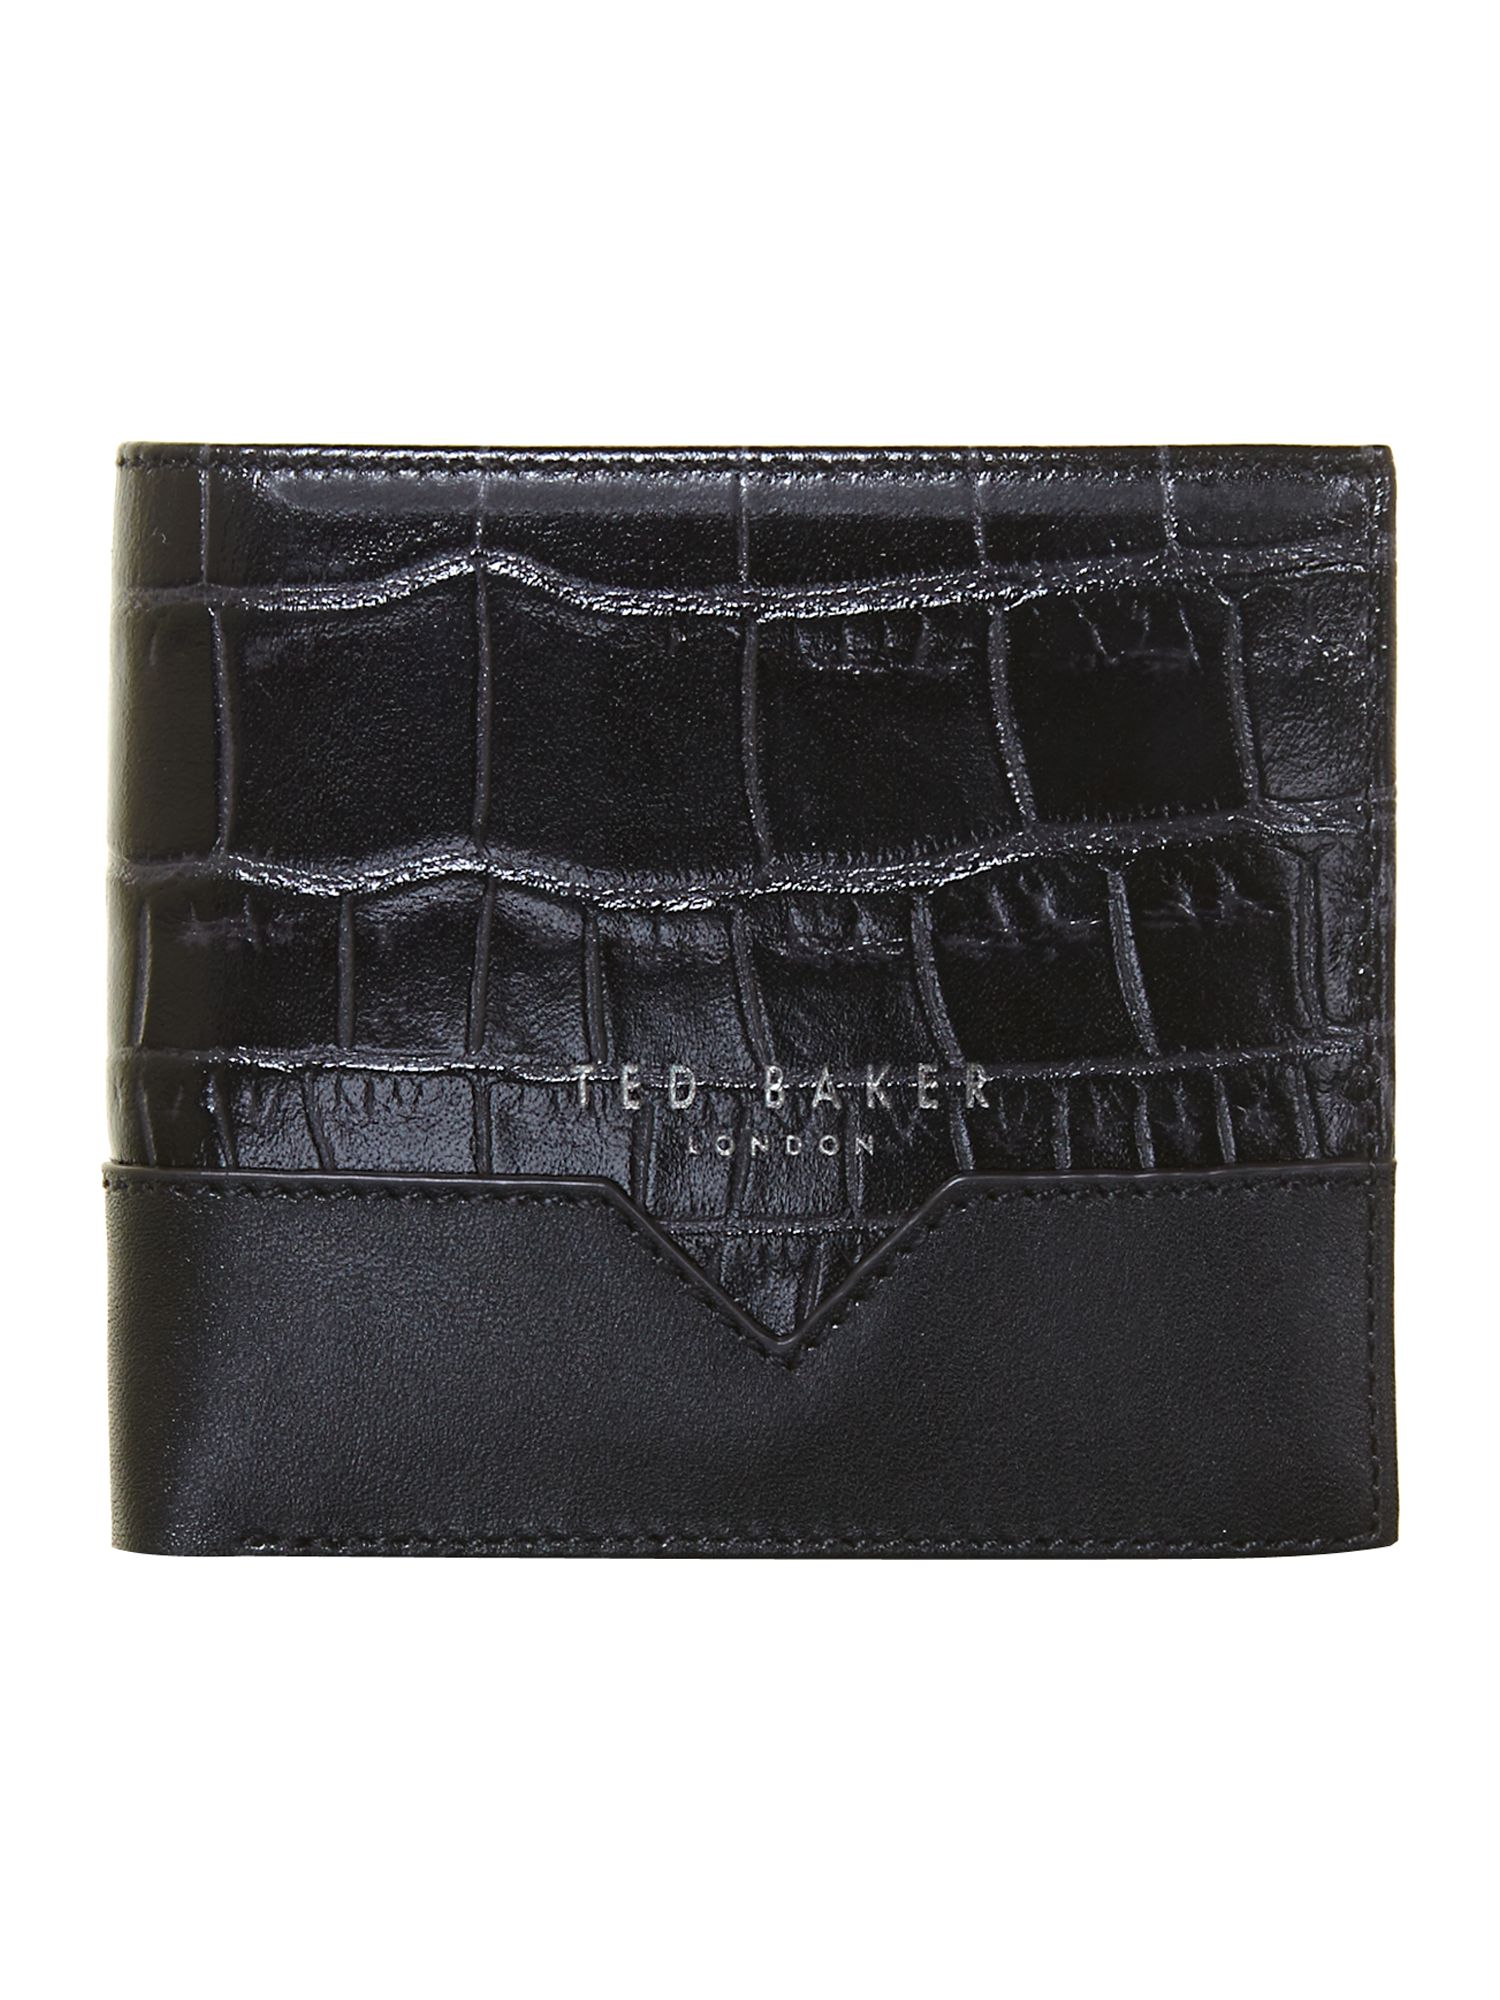 Leather croc bifold and card holder